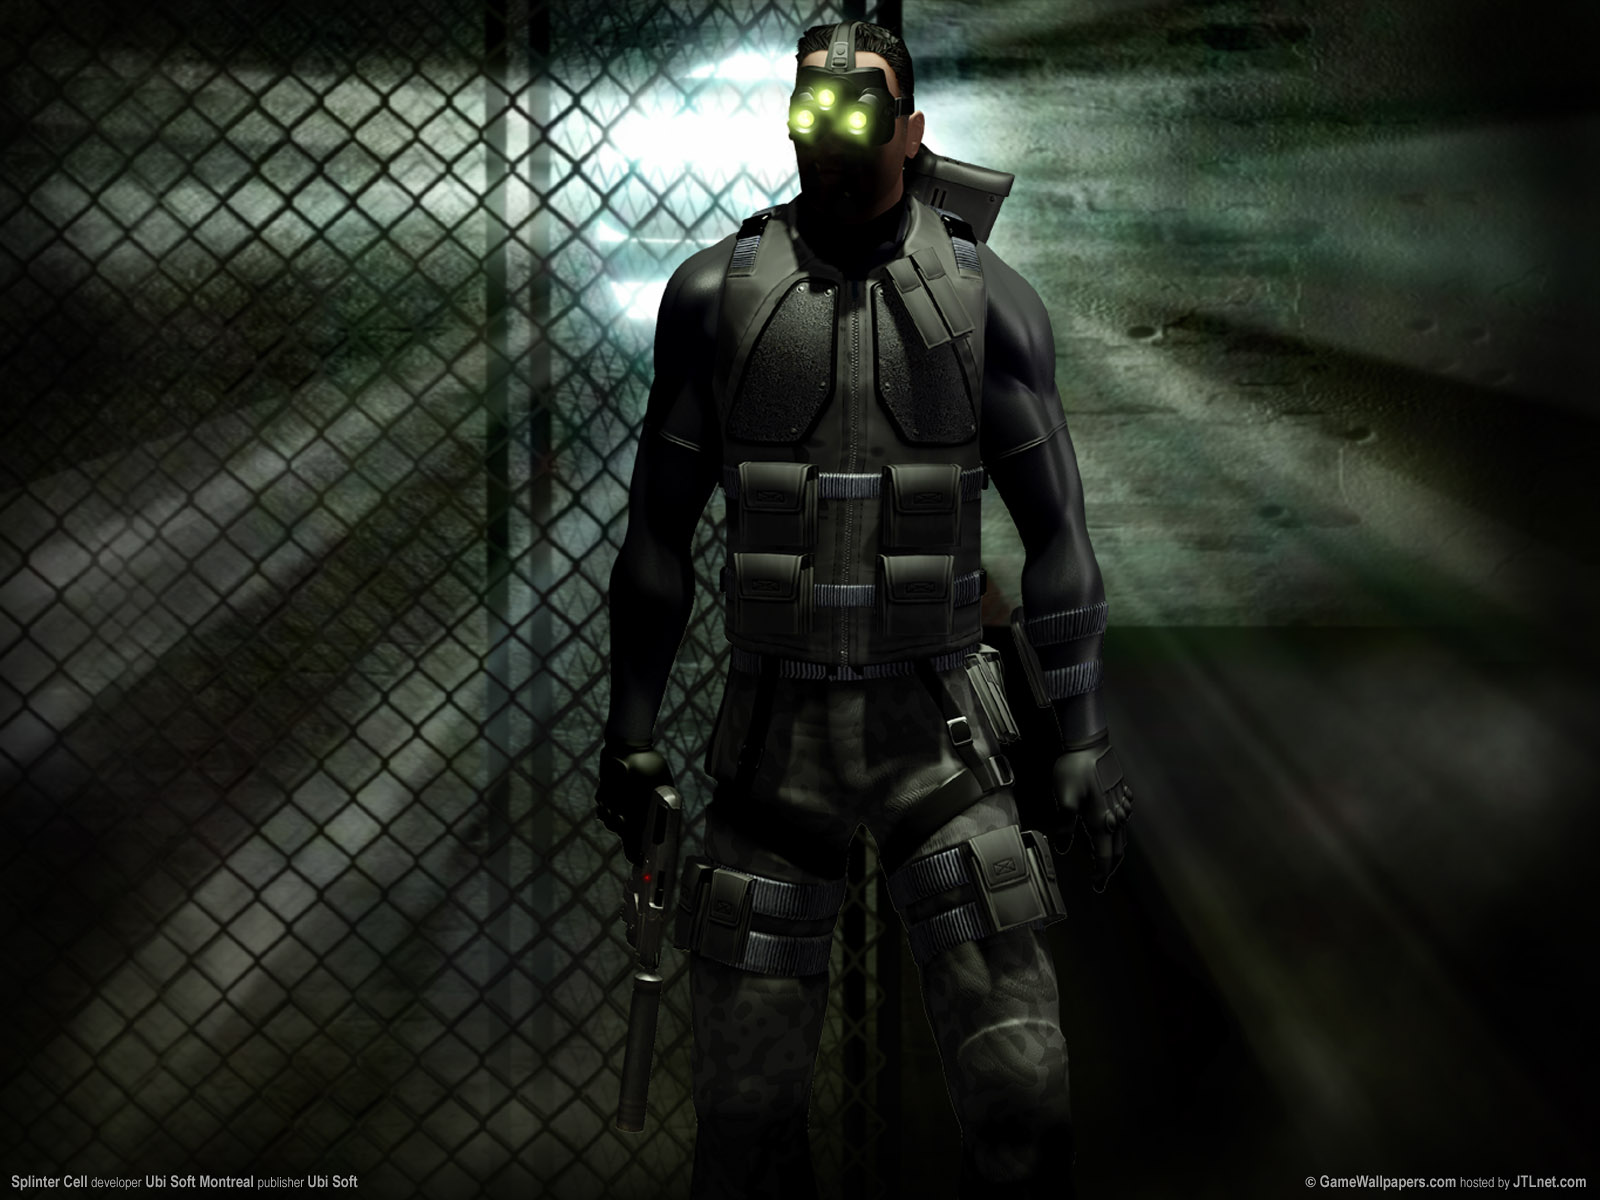 http://2.bp.blogspot.com/_R5-AN0rX9tE/TRC3vZsj2NI/AAAAAAAAAQM/94tdC9Mtbh8/s1600/splinter-cell-wallpapers_20753_1600x1200.jpg